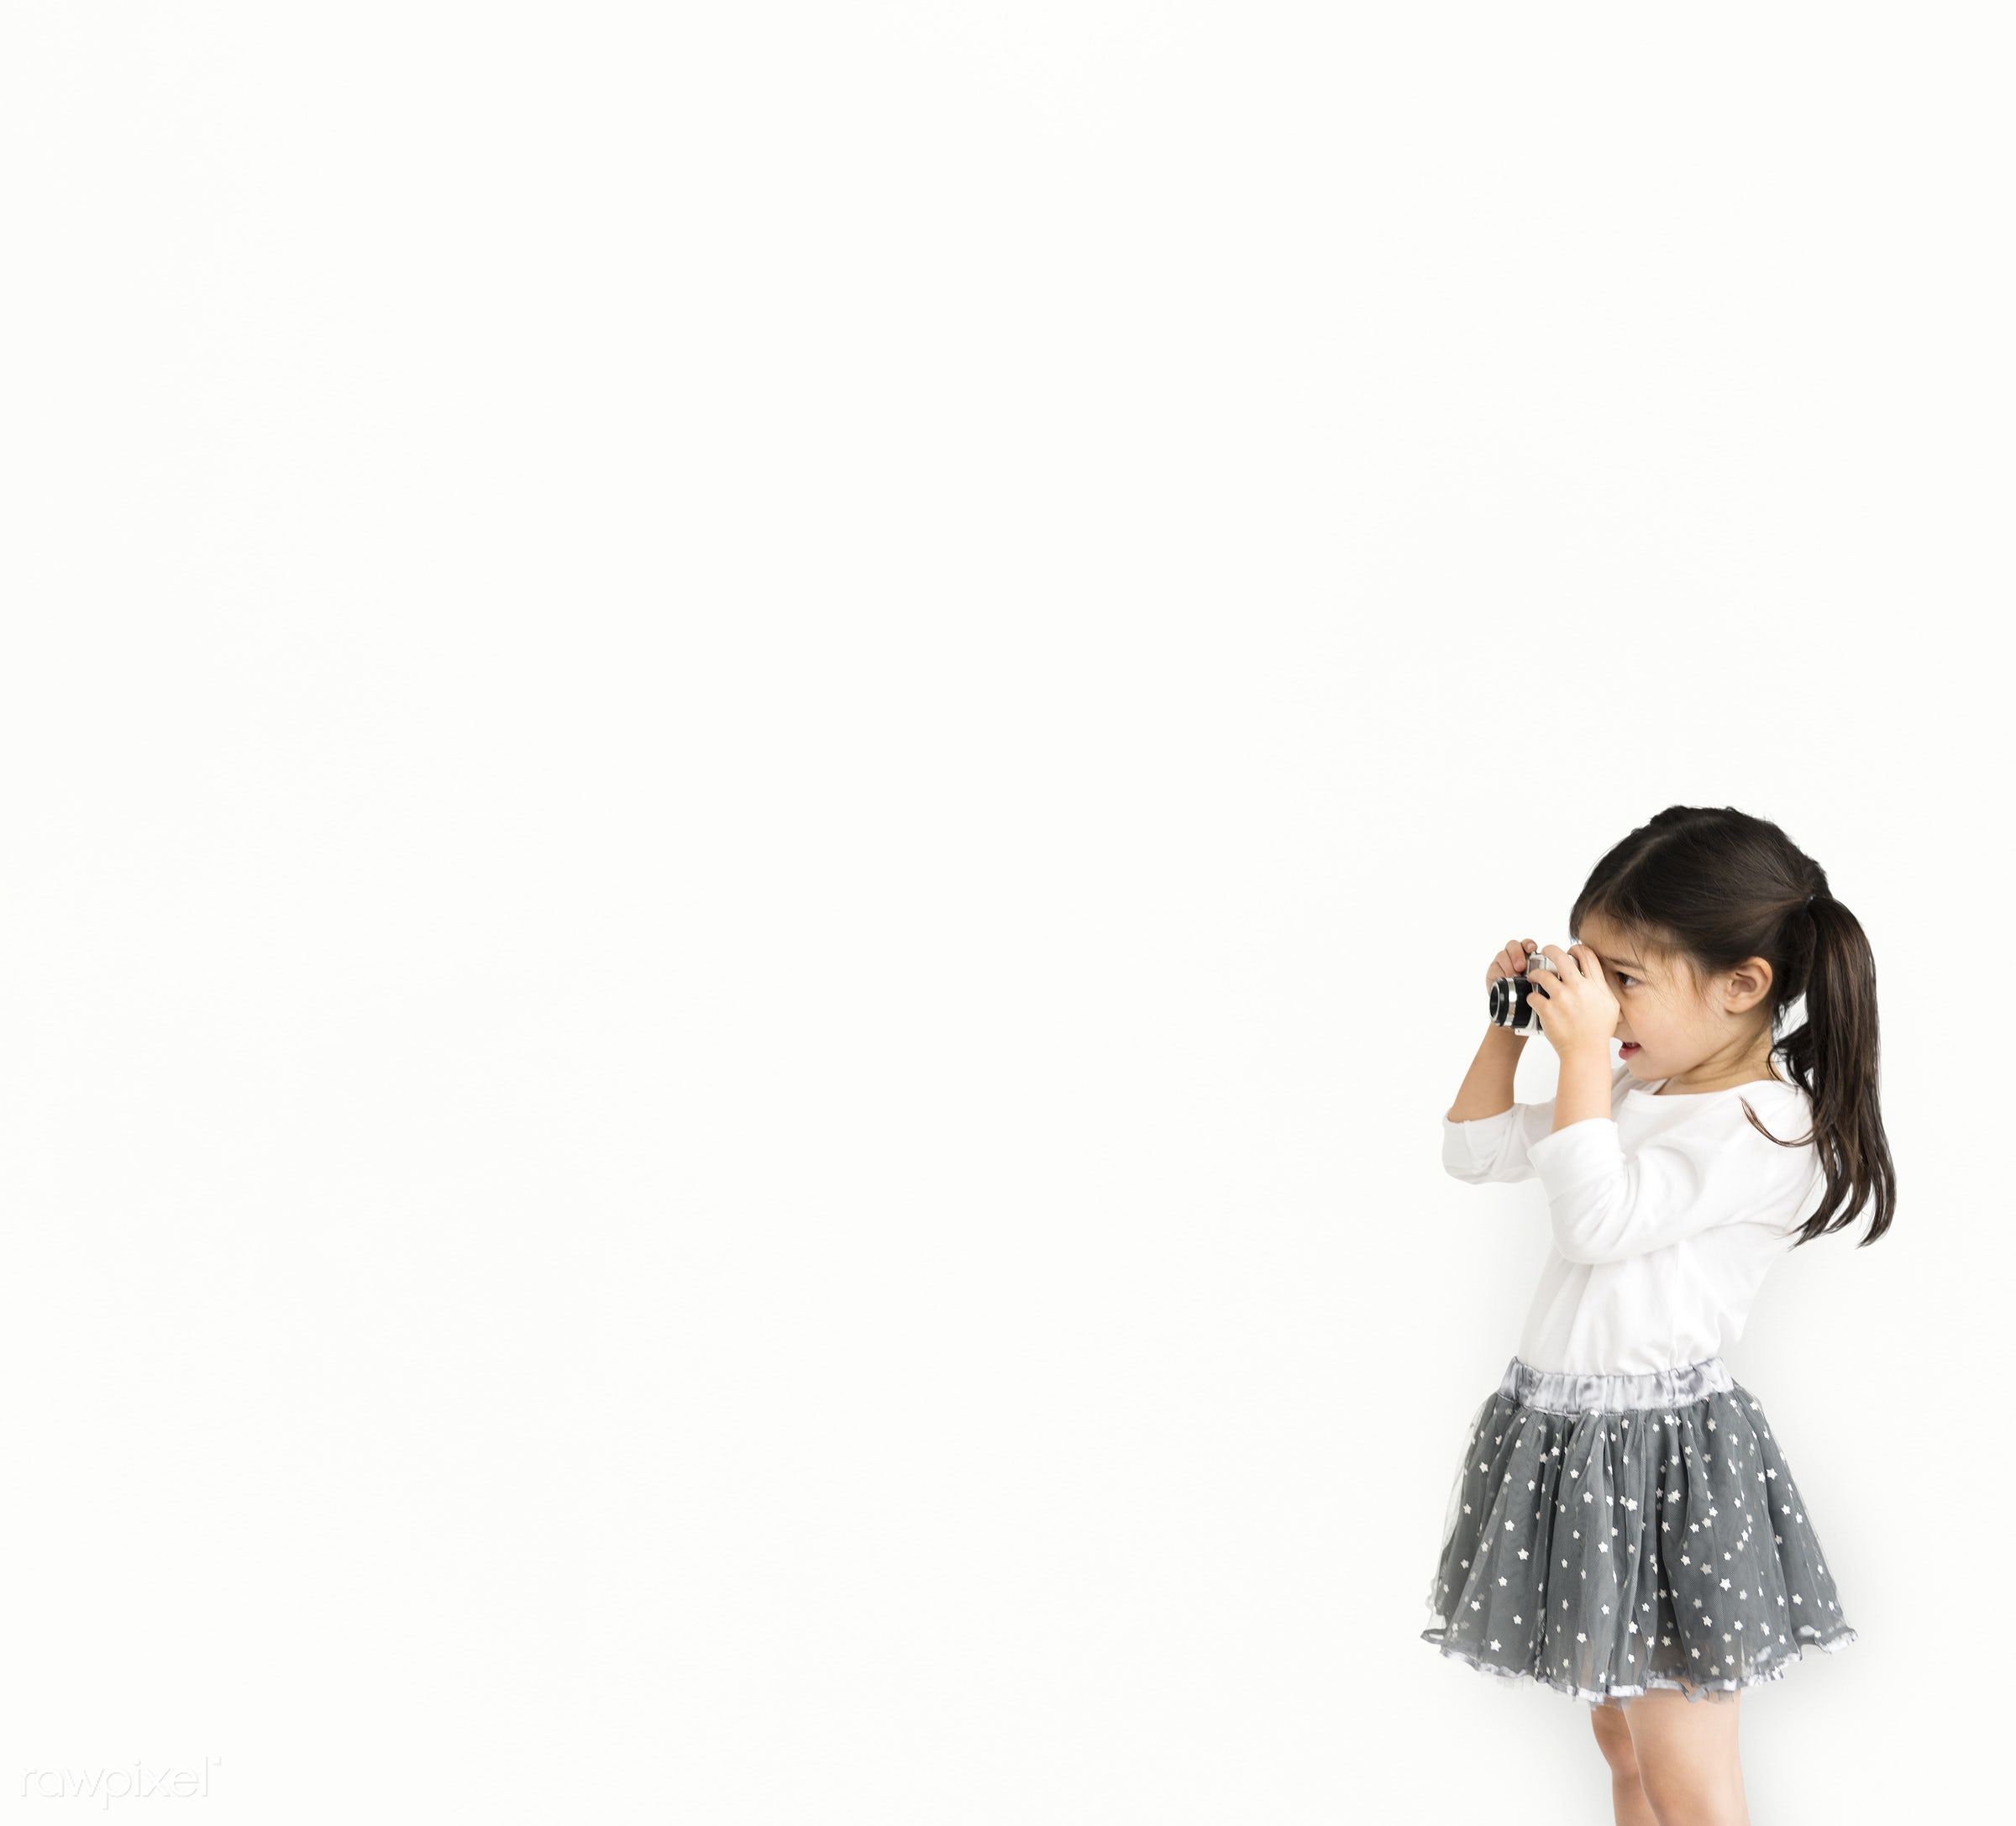 studio, person, innocent, little, people, kid, curious, solo, search, childhood, alone, isolated, white, leisure, youth,...